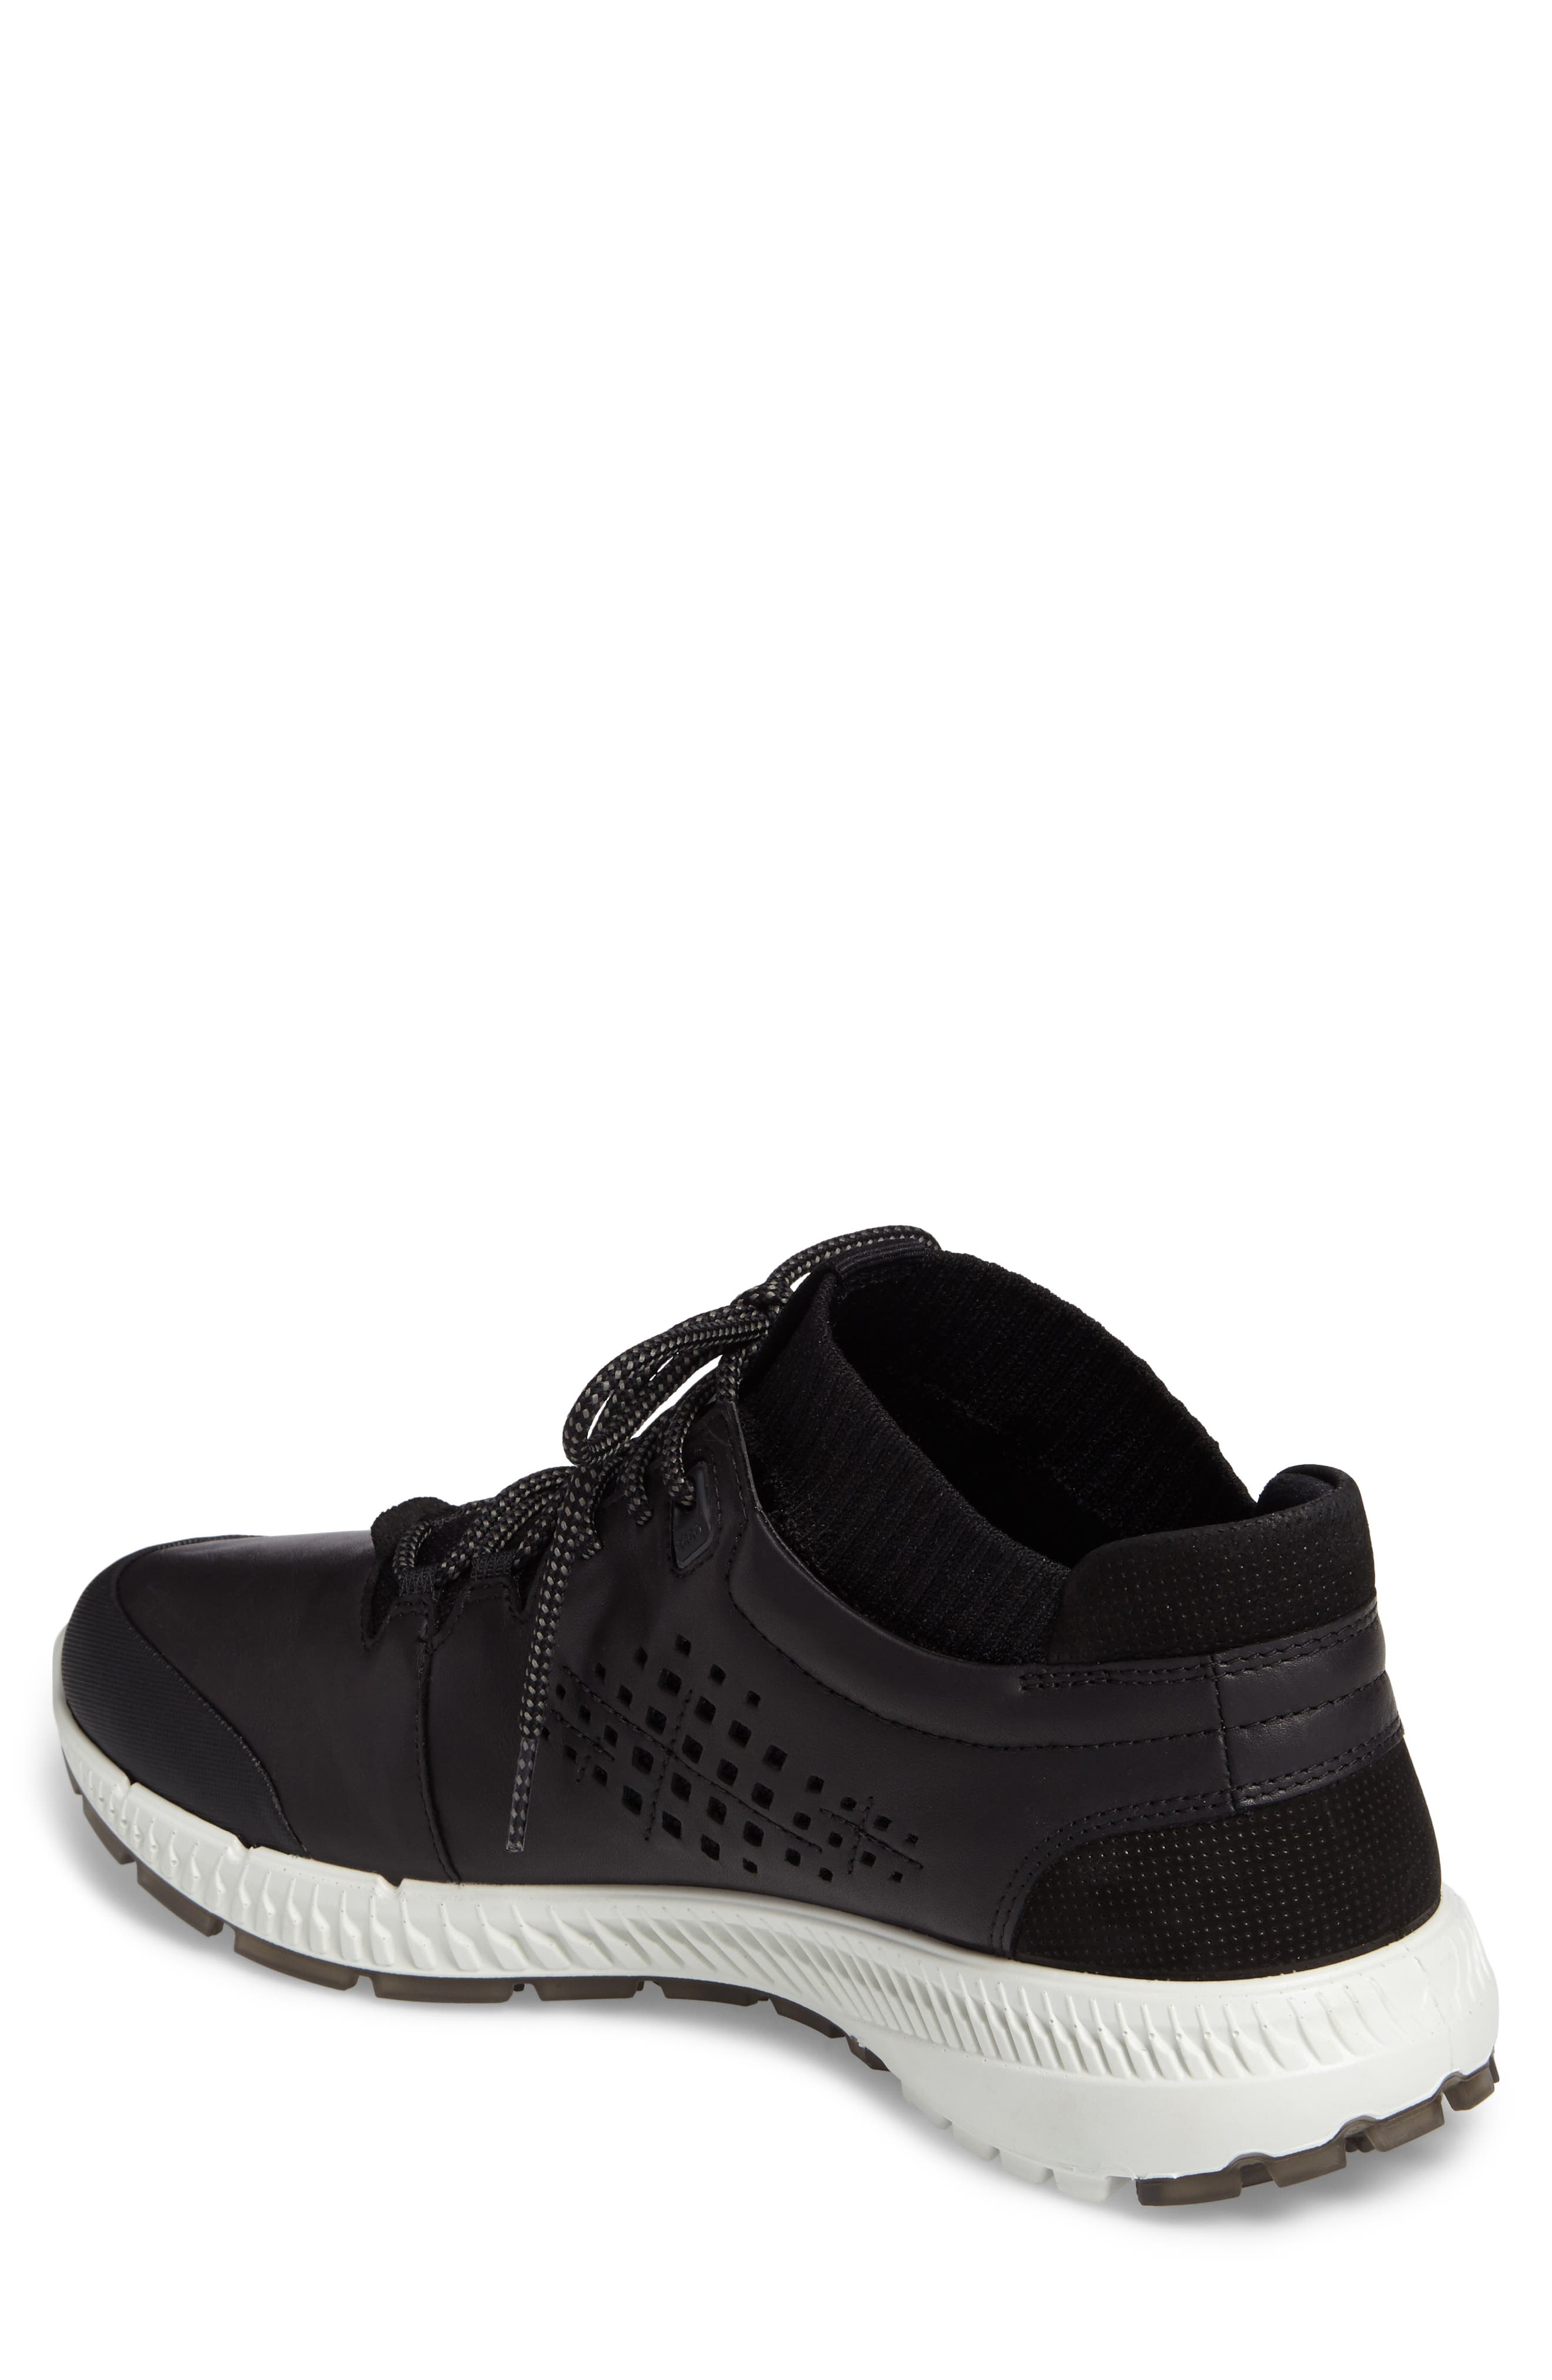 Intrinsic Mid Sneaker,                             Alternate thumbnail 2, color,                             Black Leather